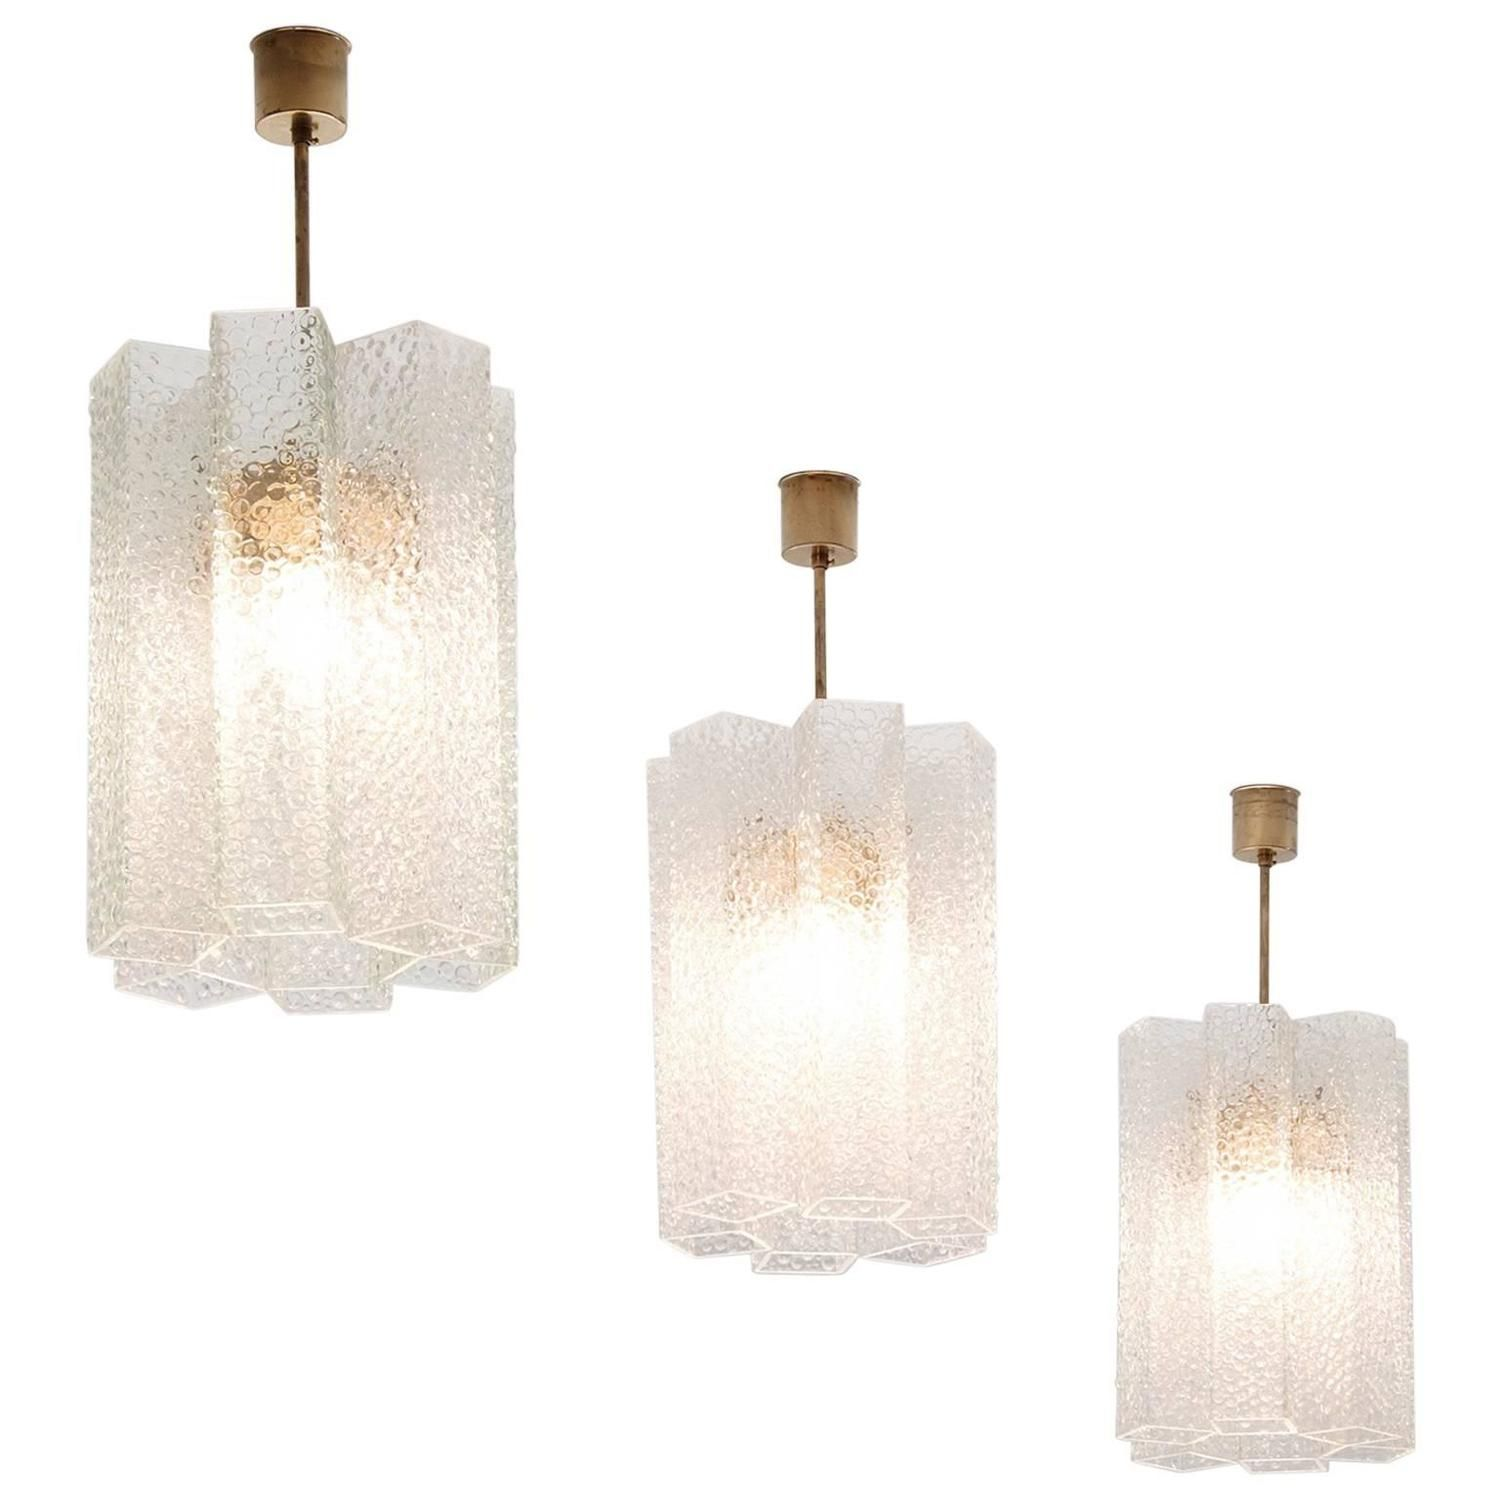 Set Of Two Pendants In Structured Glass And Brass Pendant Lighting - Set of three pendant lights